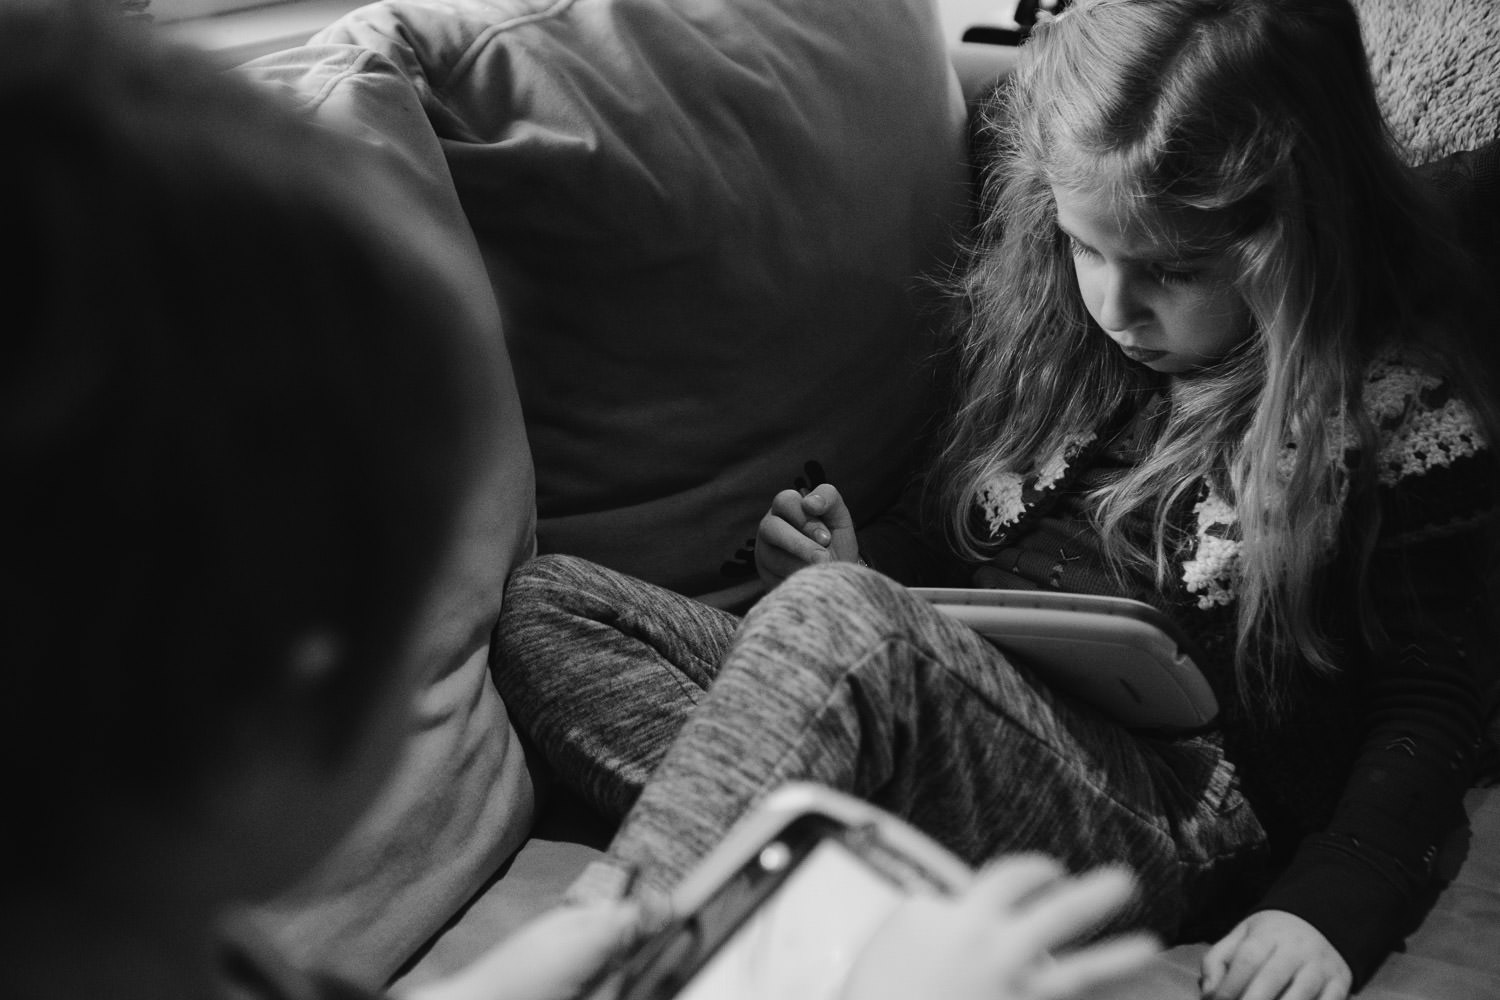 A little girl plays with an iPad on the couch.